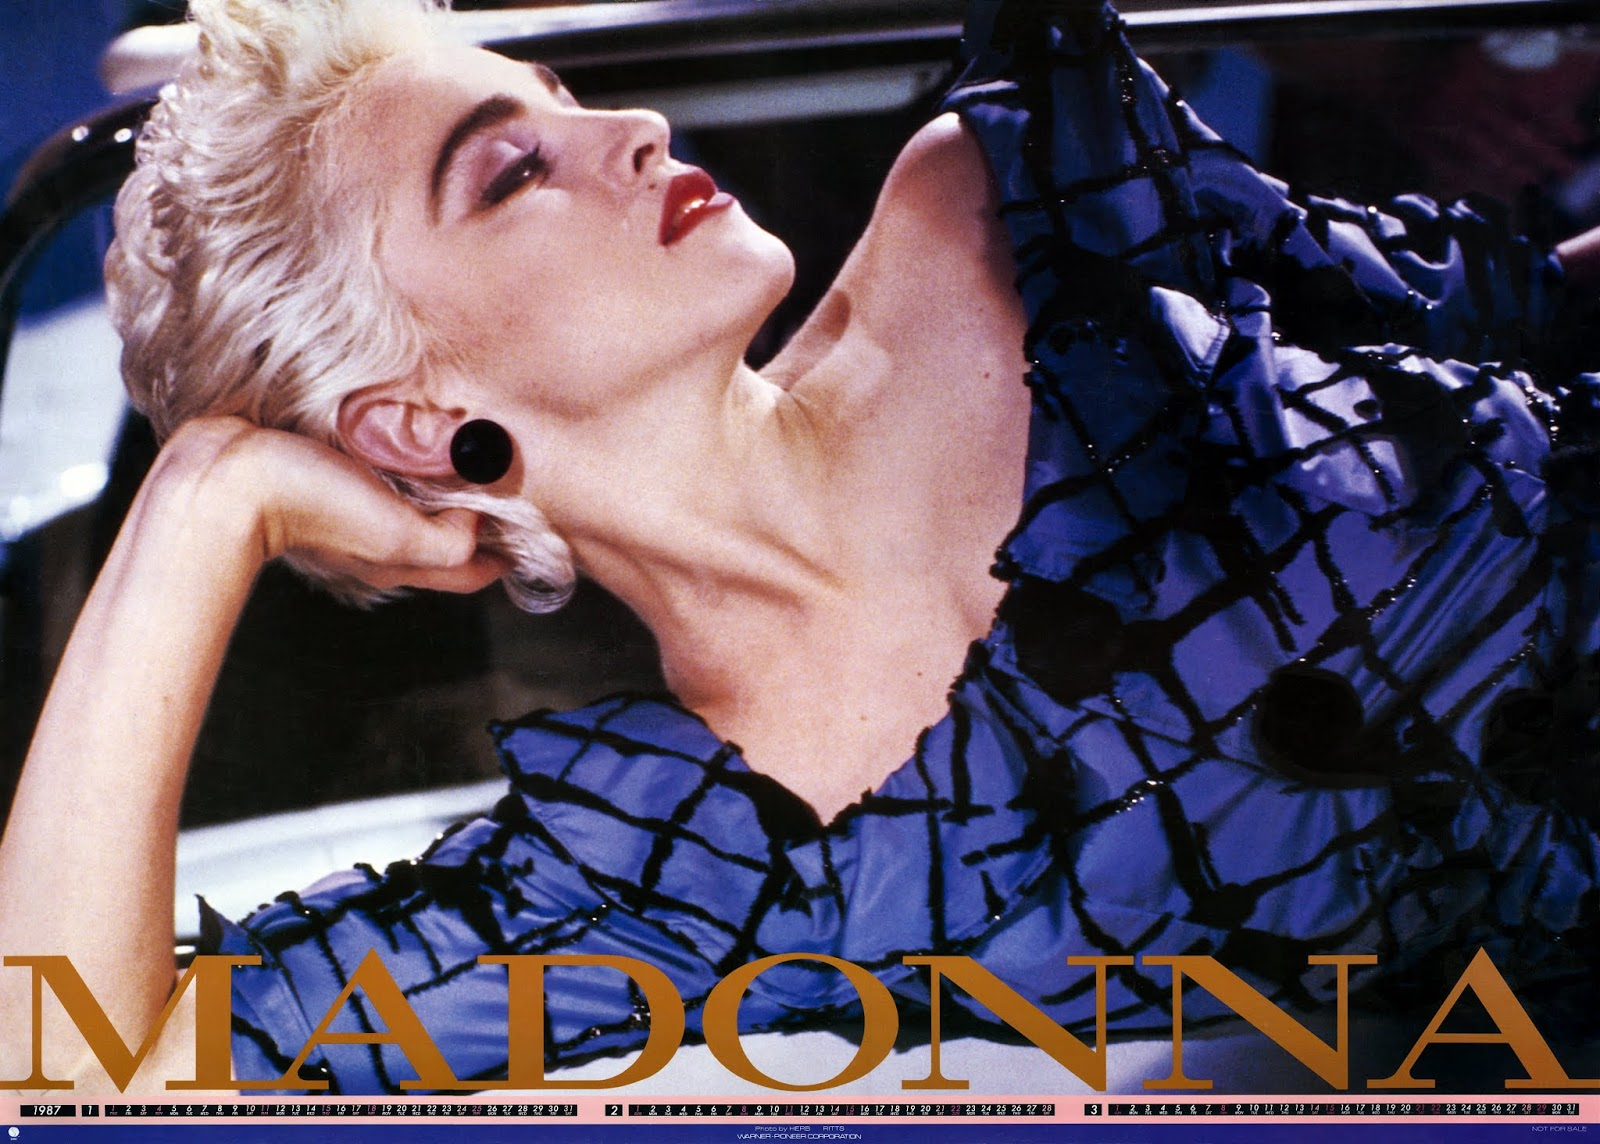 Madonna On The Cover Of A Magazine Otcoam Rare Madonna Photos Best